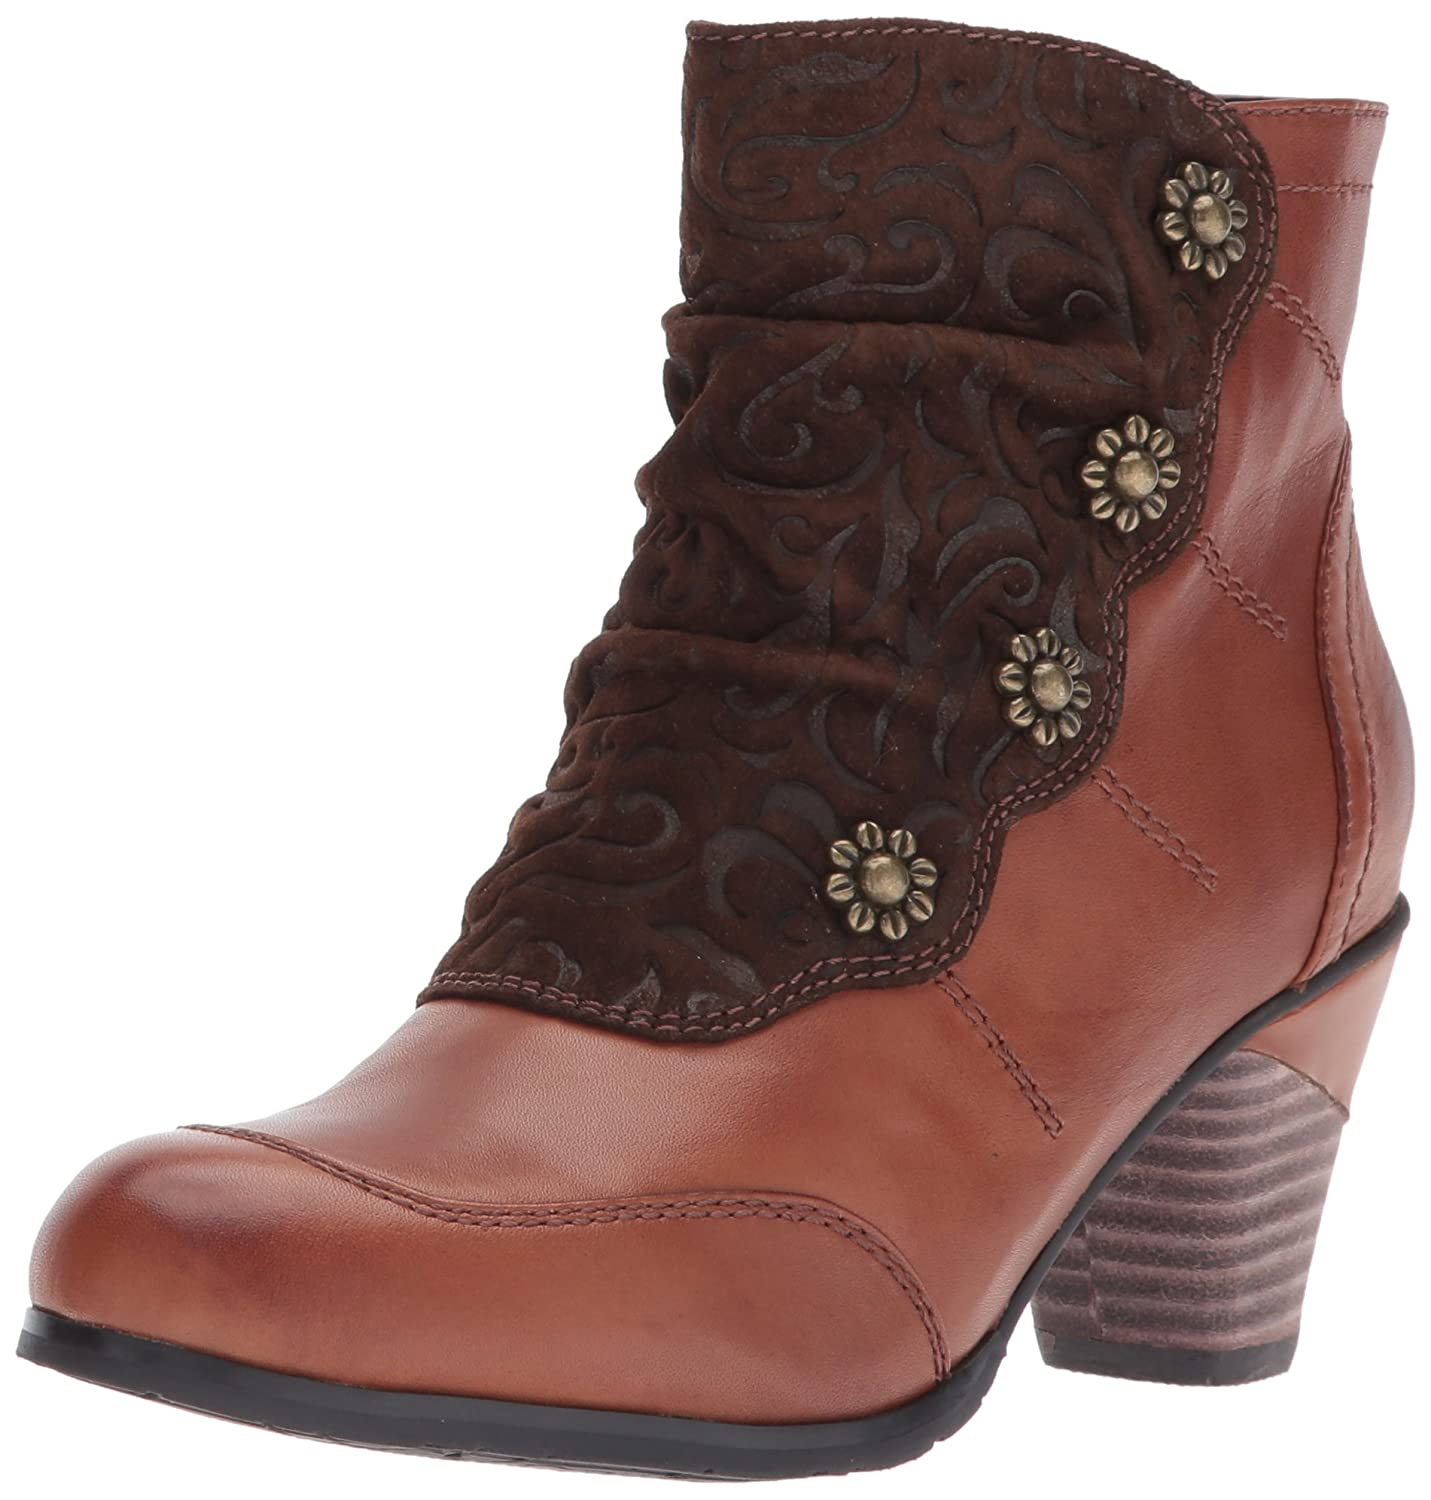 L'Artiste by Spring Step Women's Belgard Ankle Bootie B00M04NGN2 37 EU/6.5 -7 M US|Brown